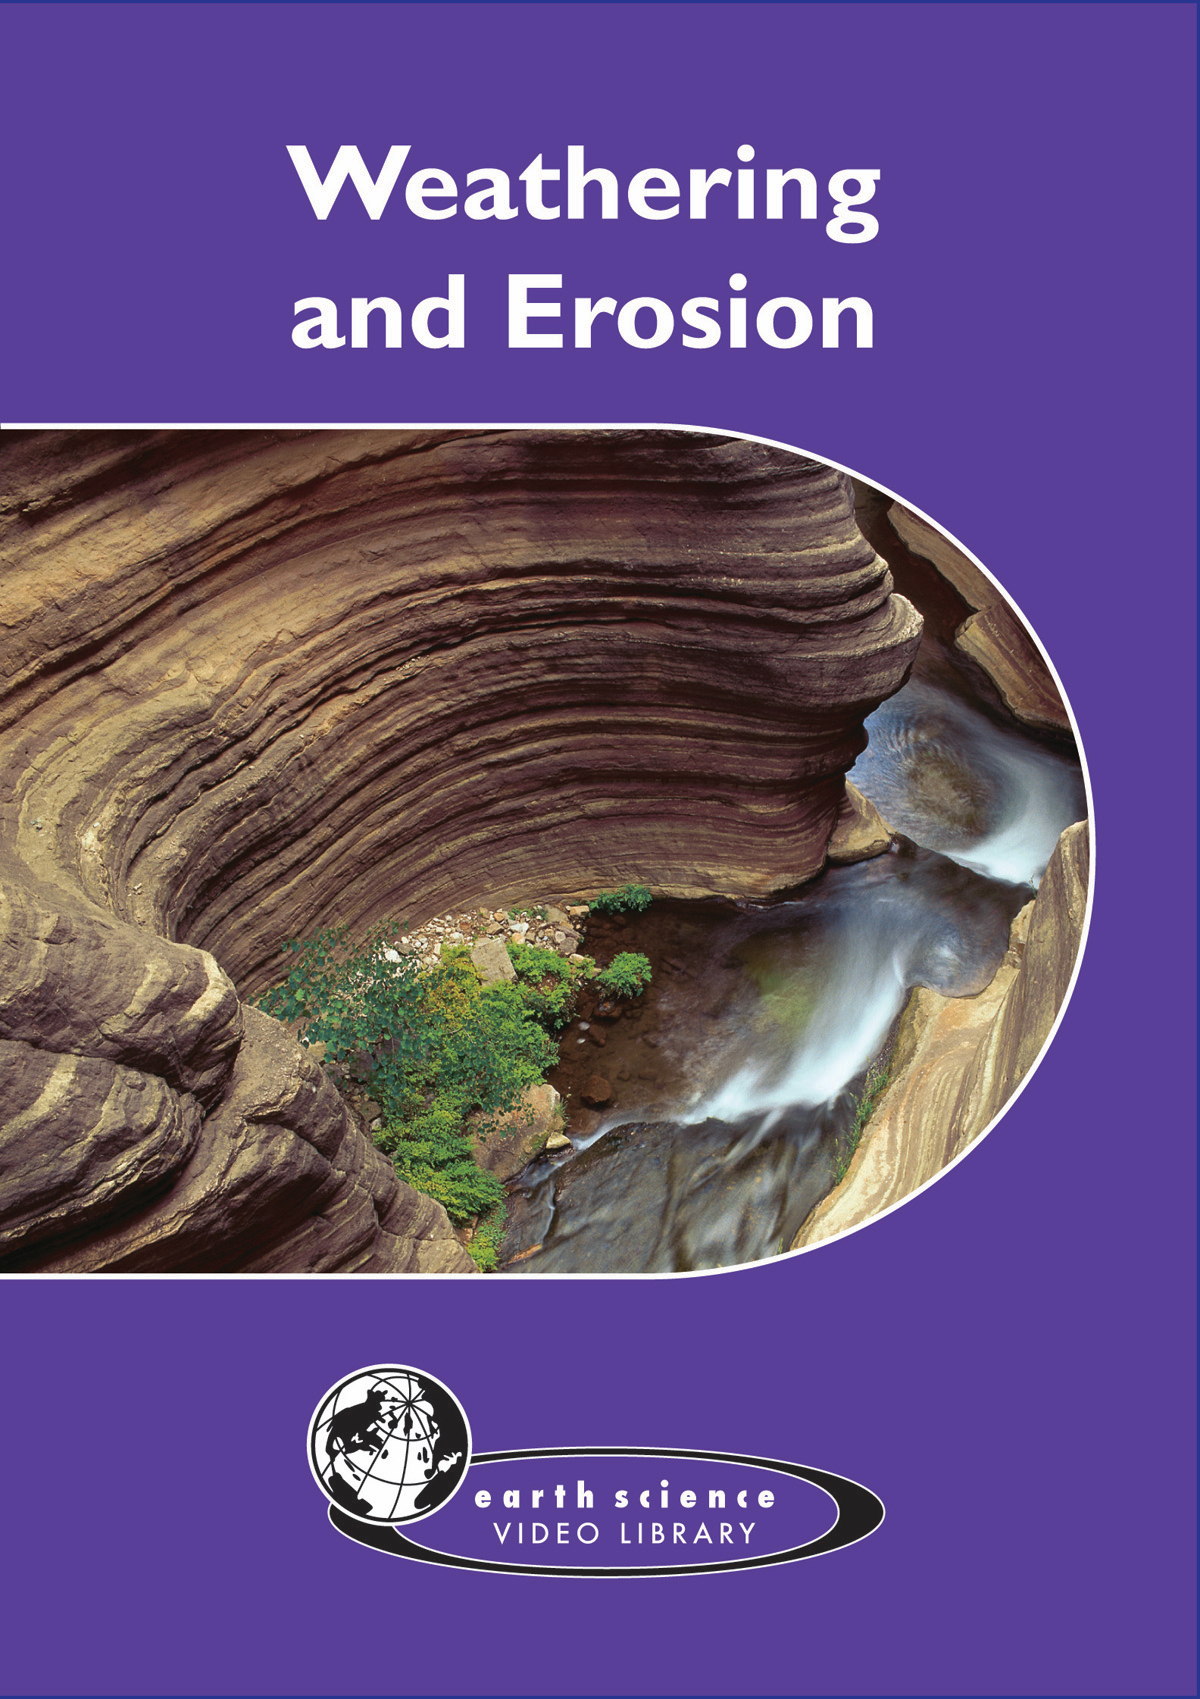 Weathering And Erosion Dvd With Activity Leave Only Bubbles